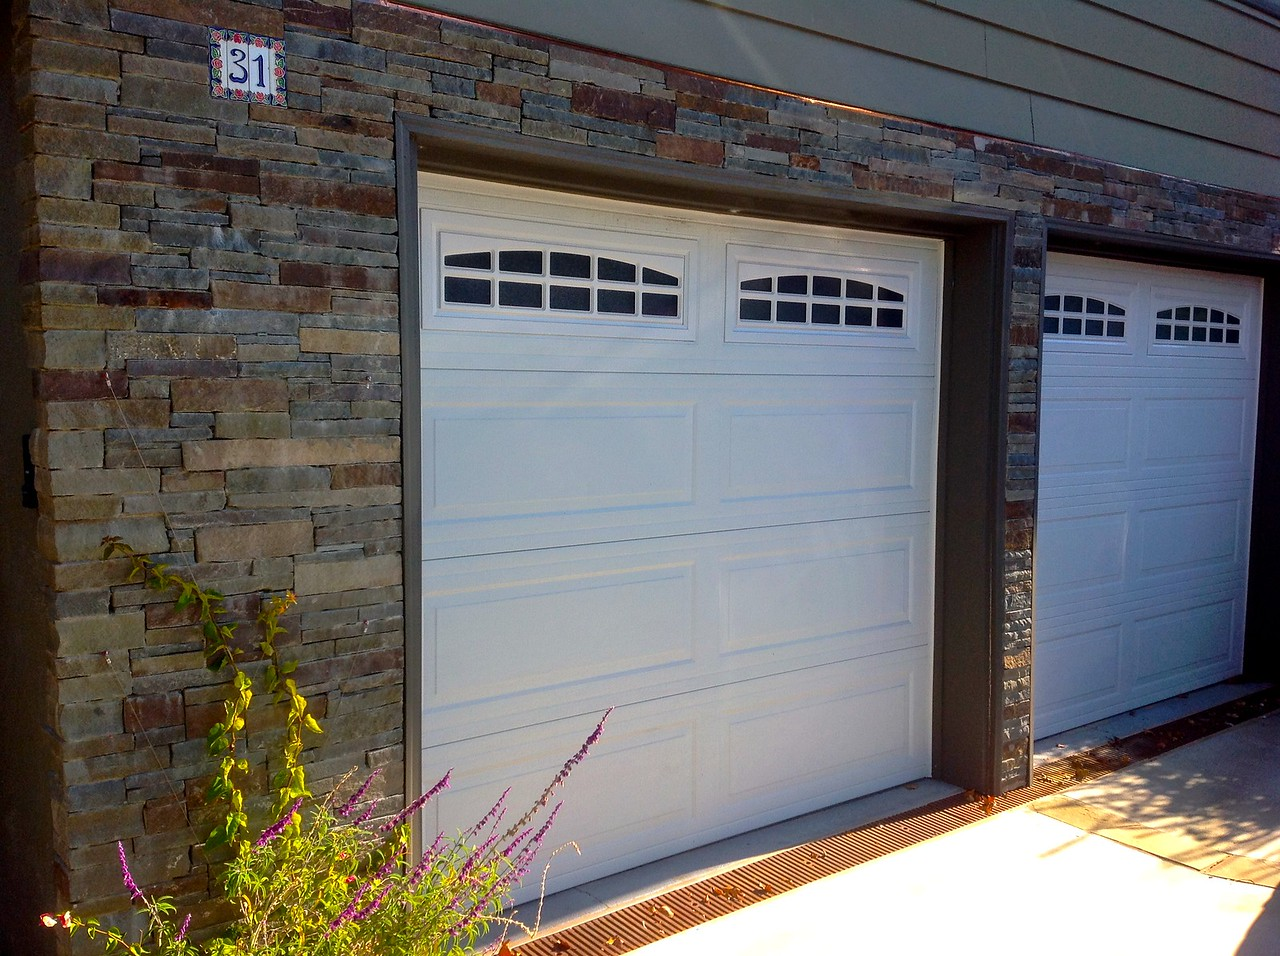 The completed ledge stones around the garage doors.